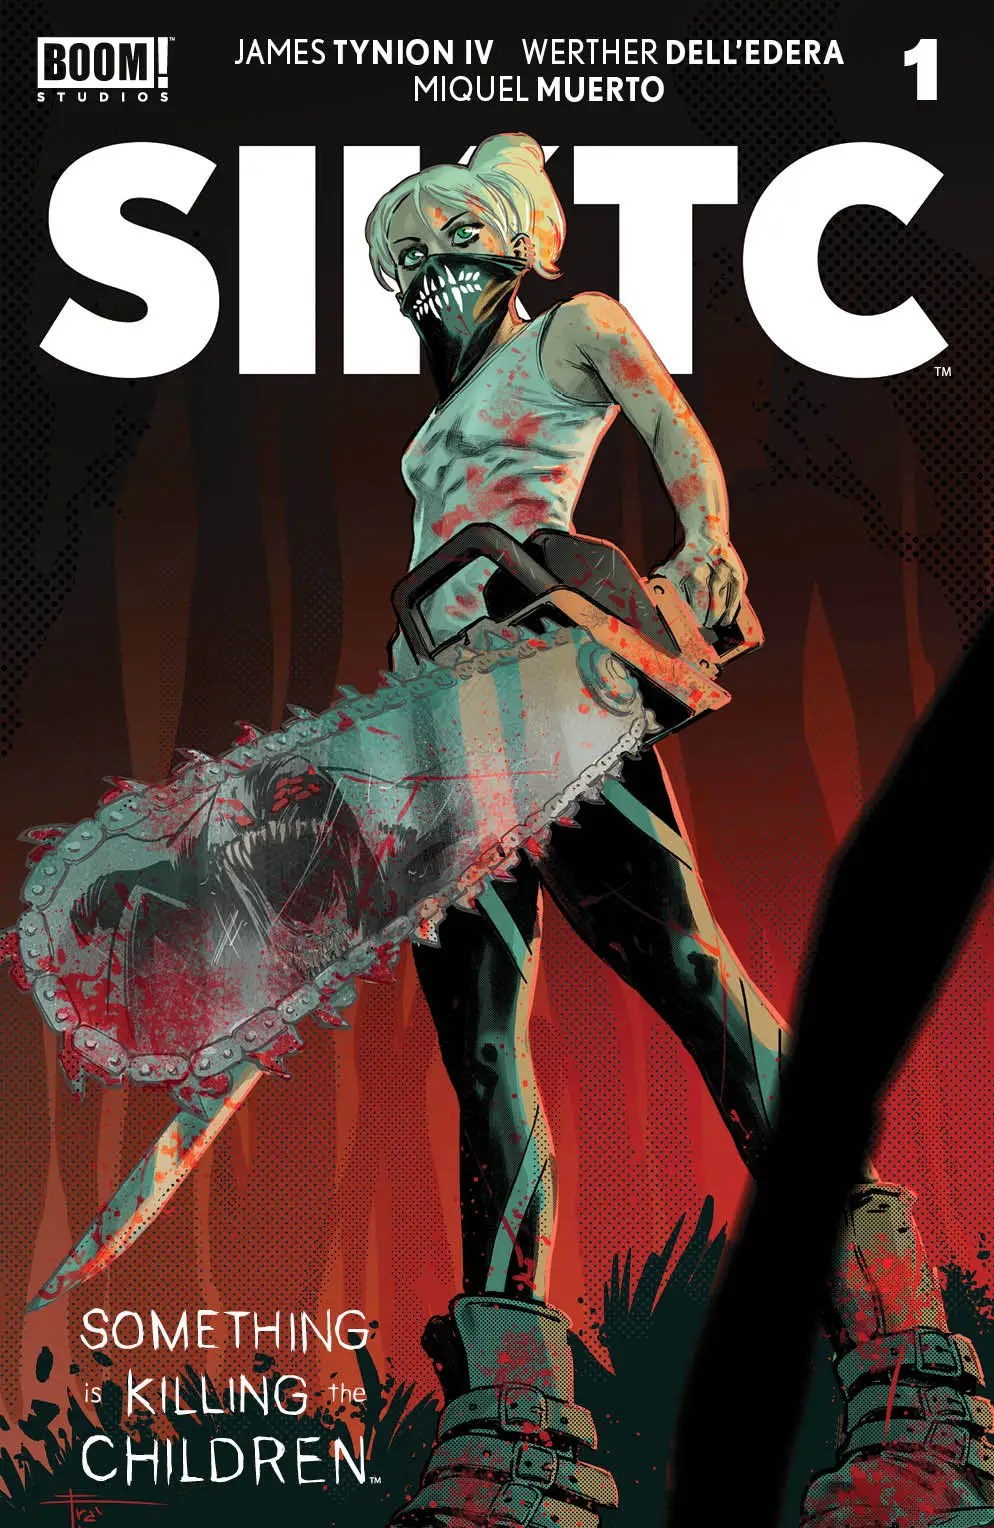 c921d1ce-9c70-45a4-9d0a-f7f488c558d6 SOMETHING IS KILLING THE CHILDREN #1 eighth printing announced by BOOM! Studios